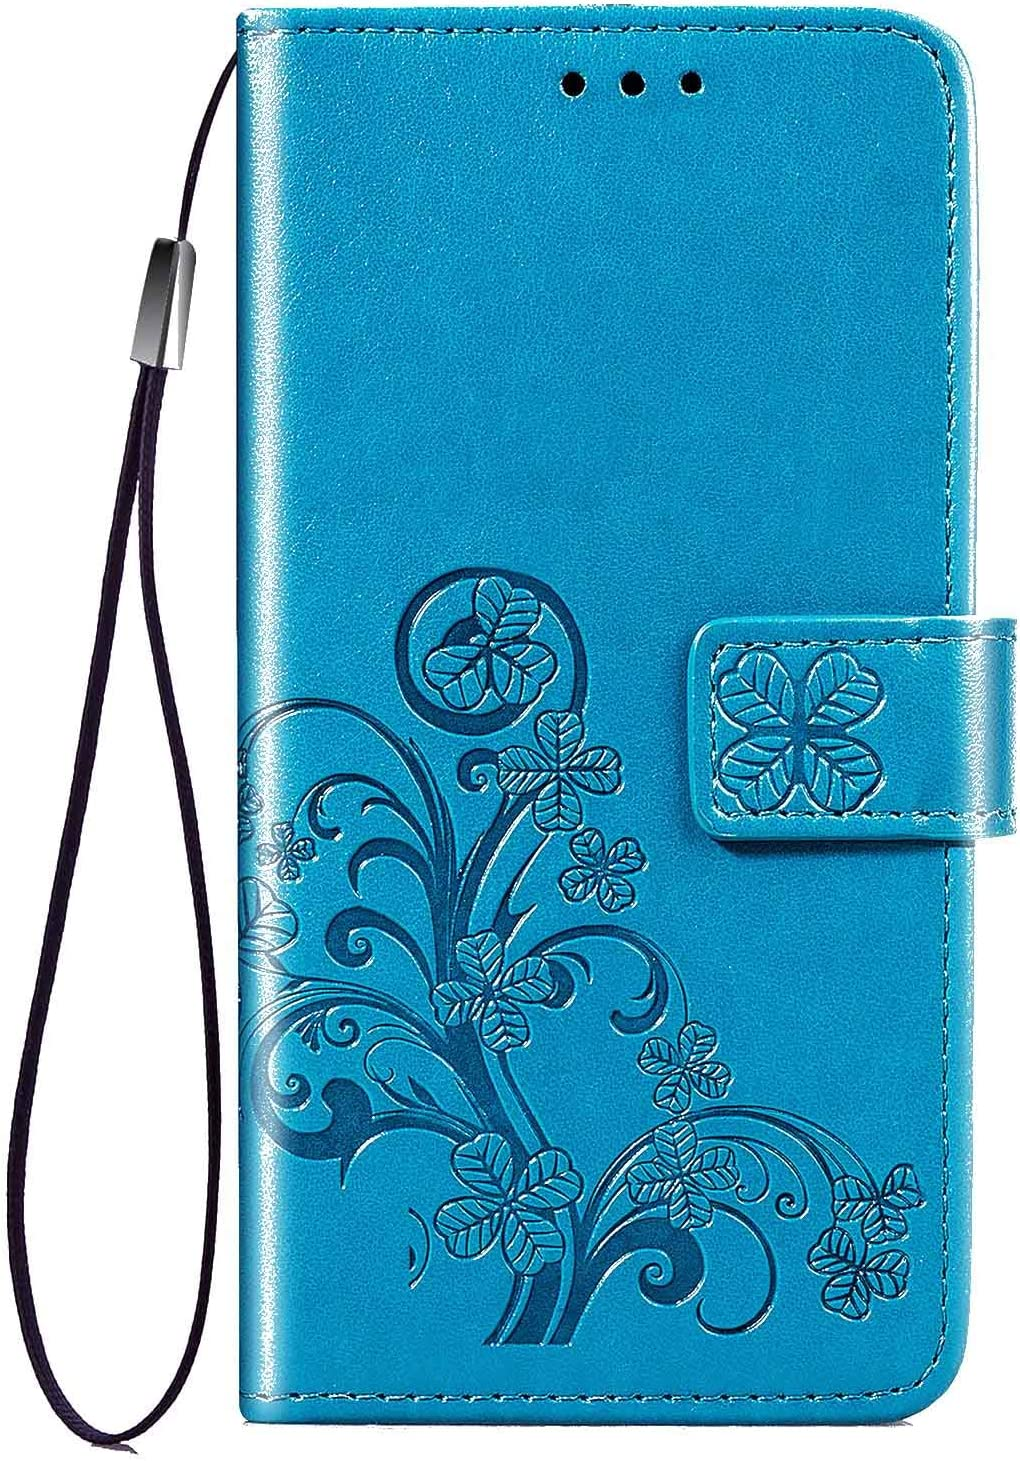 Case Compatible for iPhone 11 Pro 6.5inch,Luxury Wallet Case,[Hand Strap] Handmade Flip Folio Magnetic Closure Cover with [Kickstand Function] and[Card Slots] for iPhone 11 Pro 6.5inch -Blue